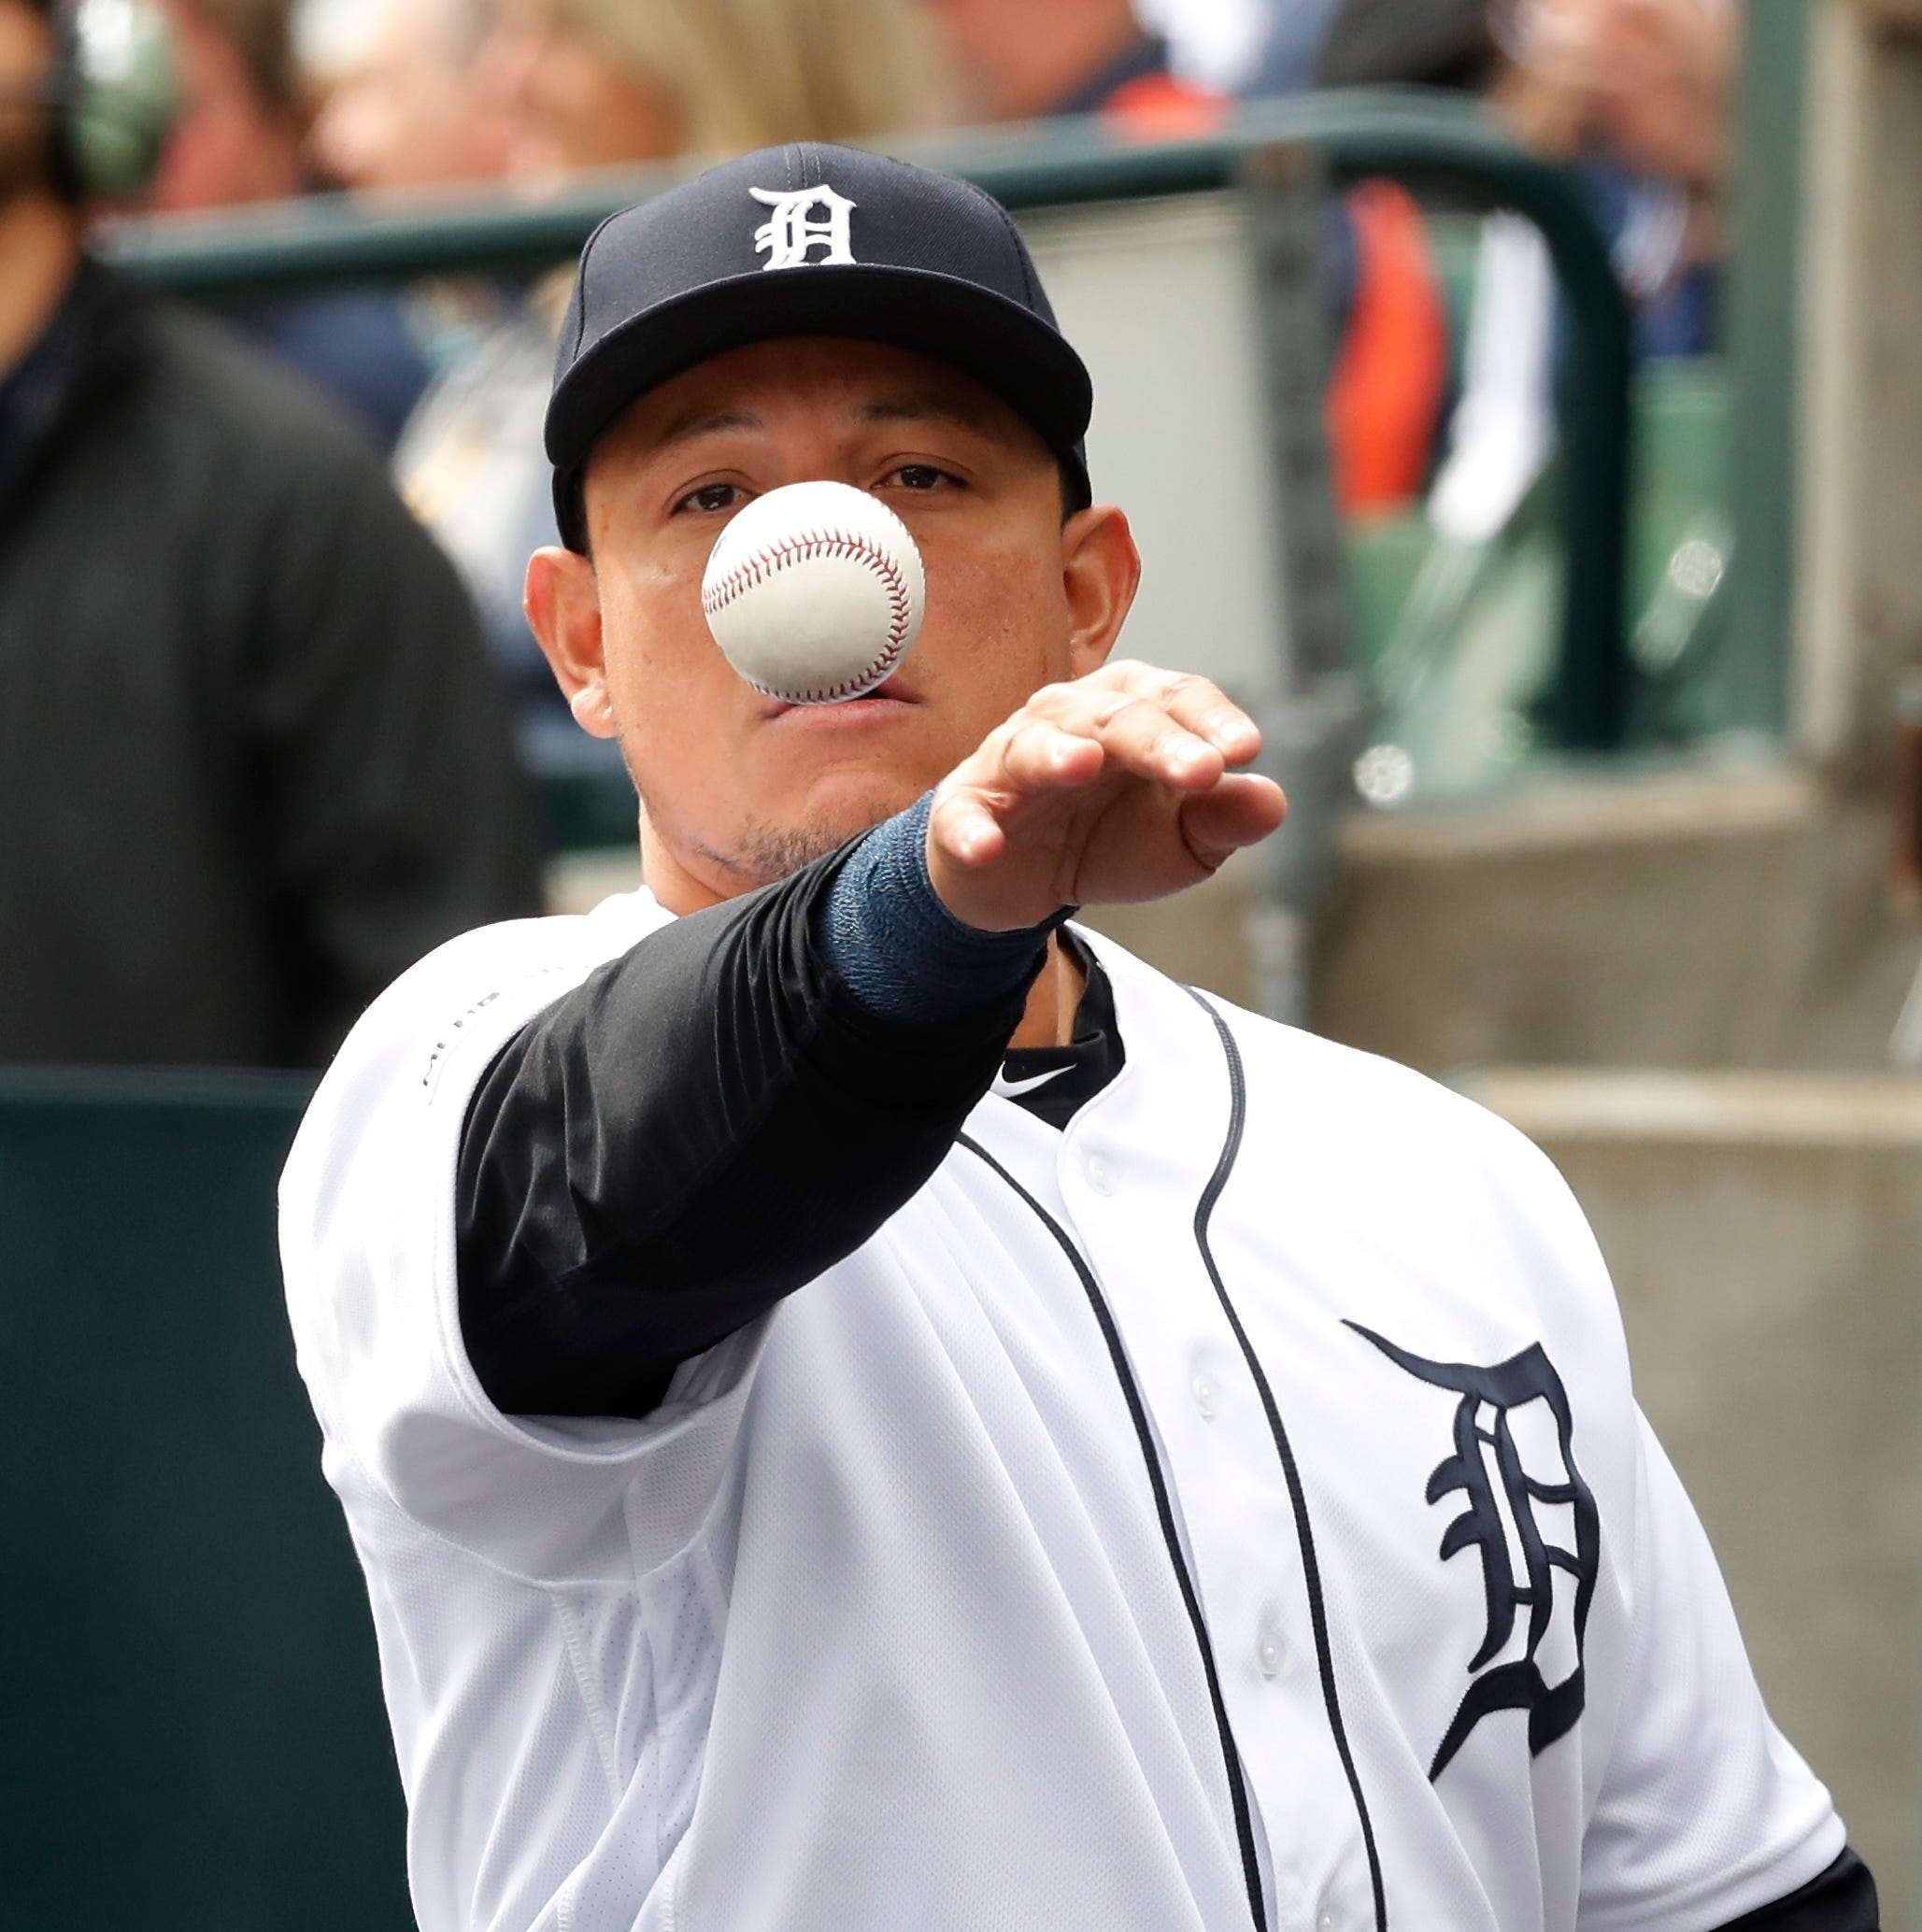 Miguel Cabrera scoffs at power outage: 'You know who's hitting behind me?'